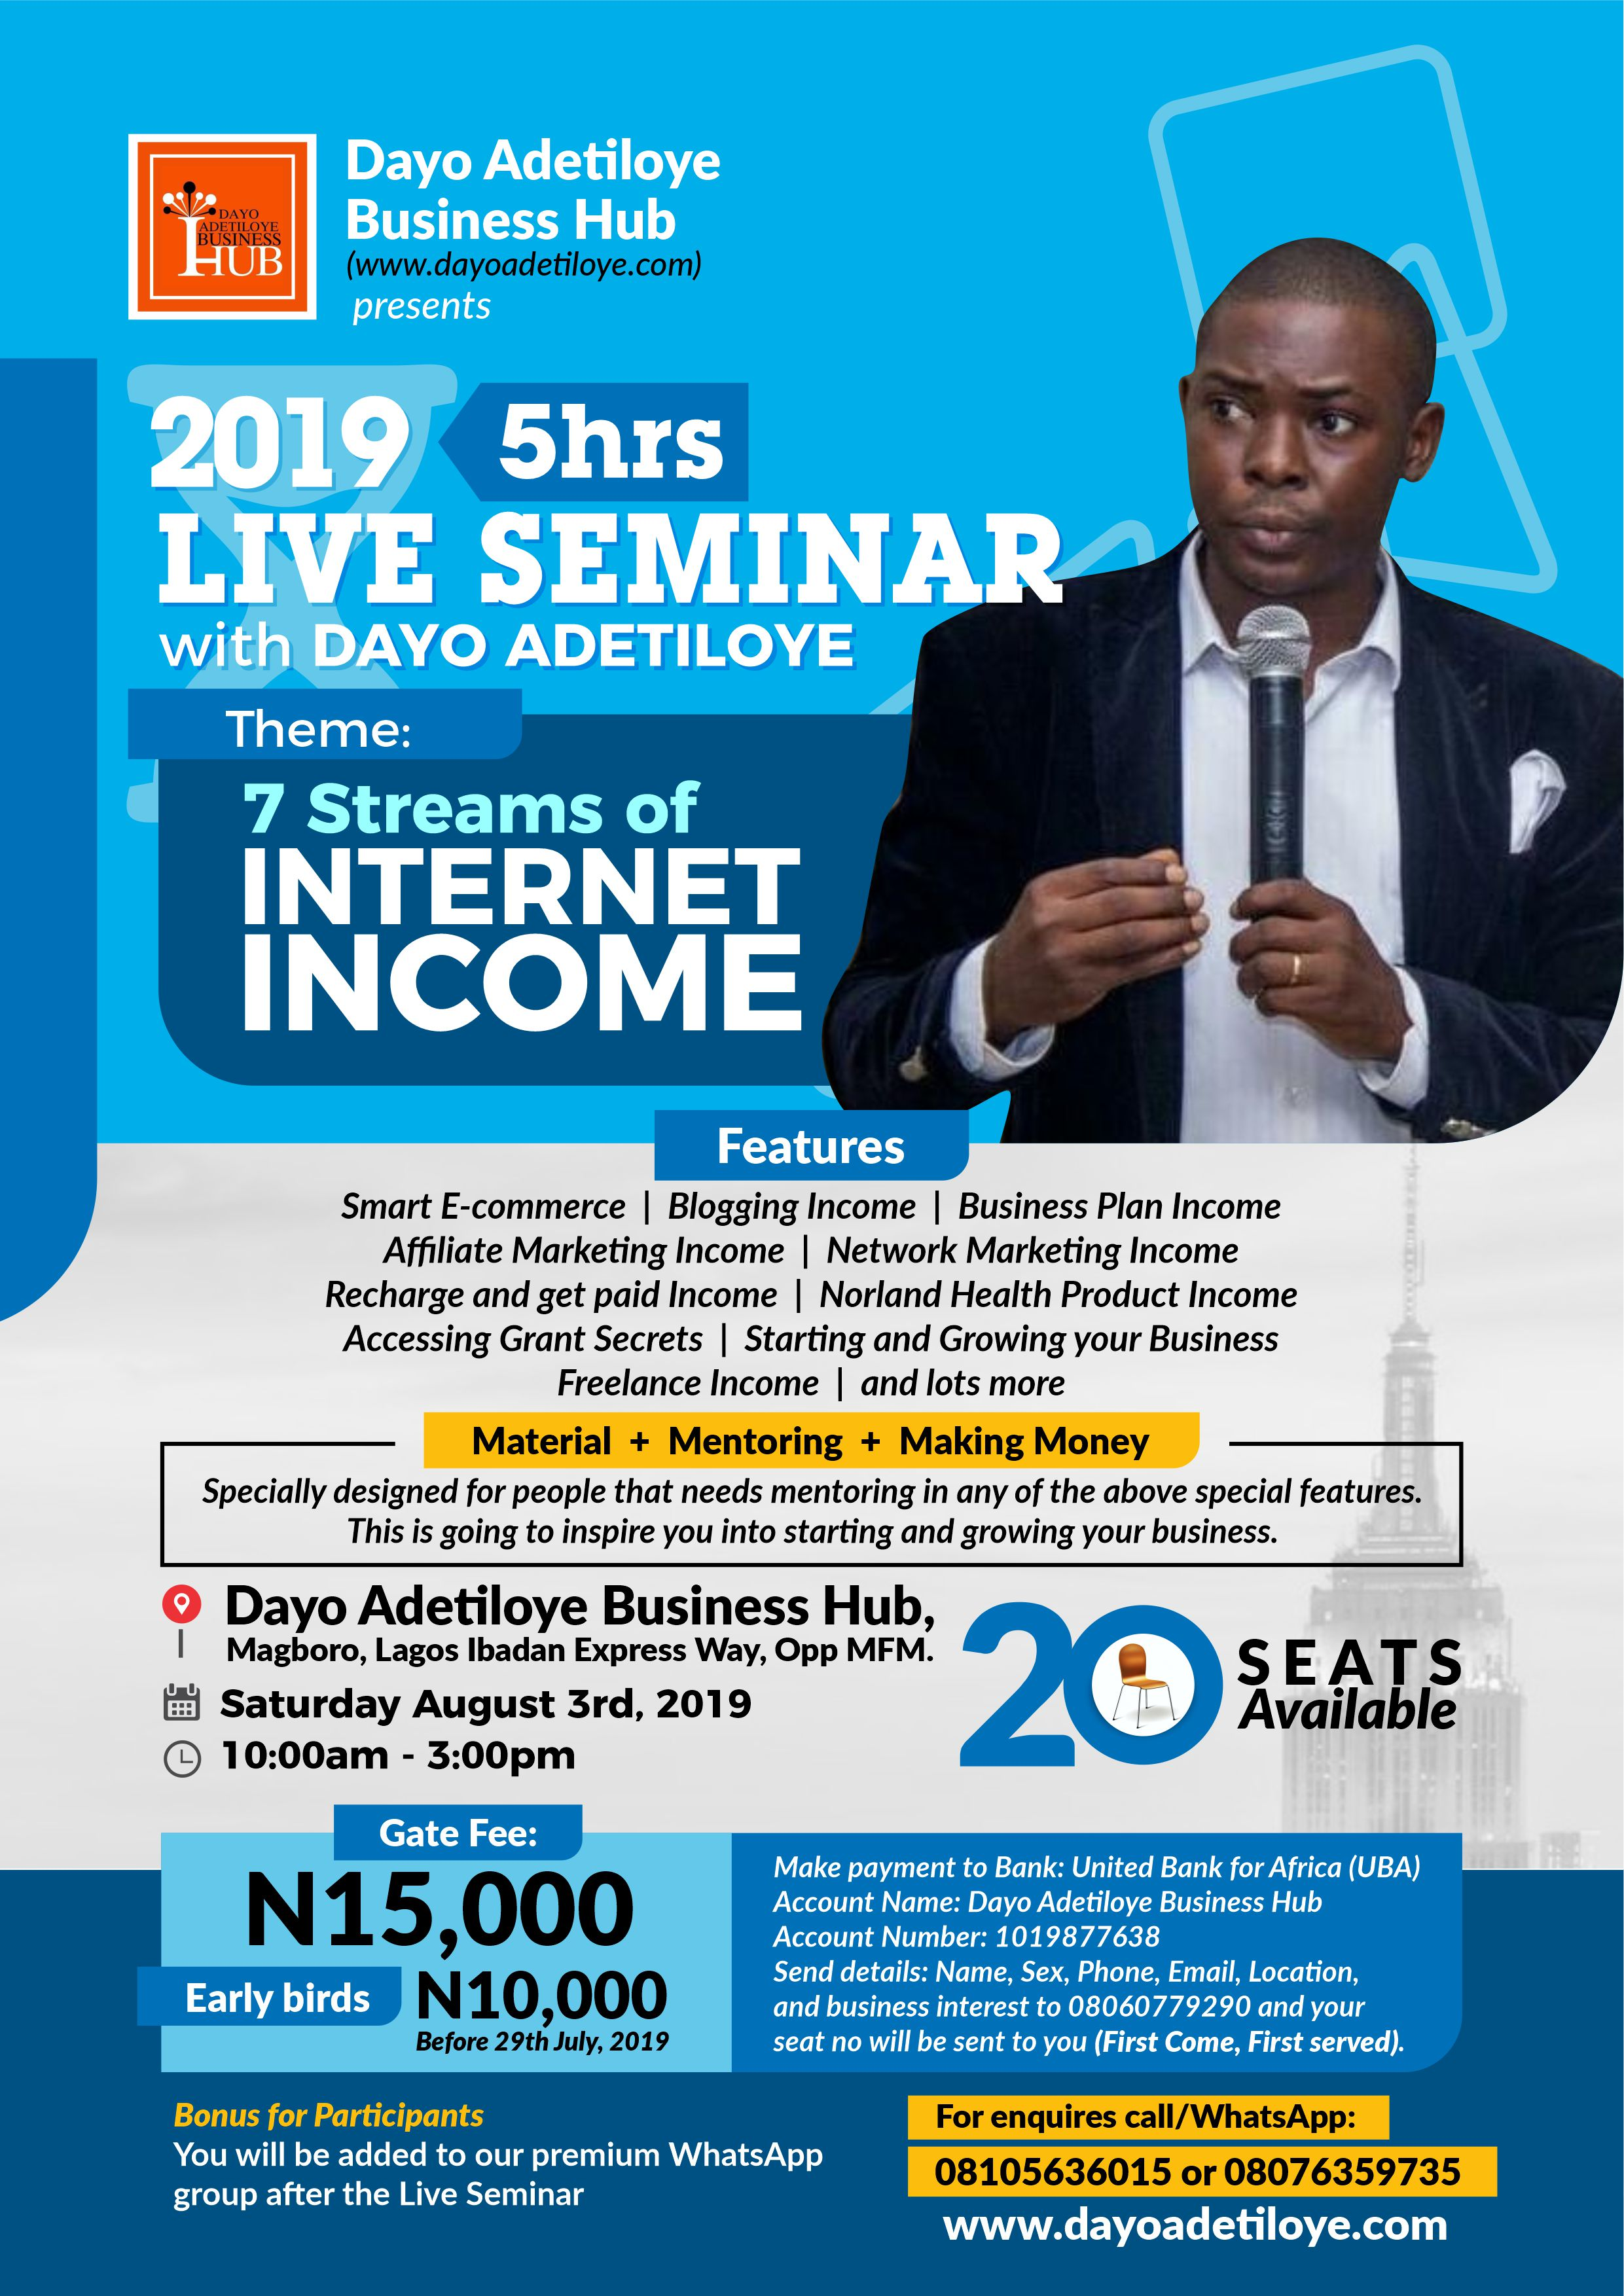 Special Invitation: Attend 2019 Lagos live Seminar with Dayo Adetiloye on August 3rd 2019.